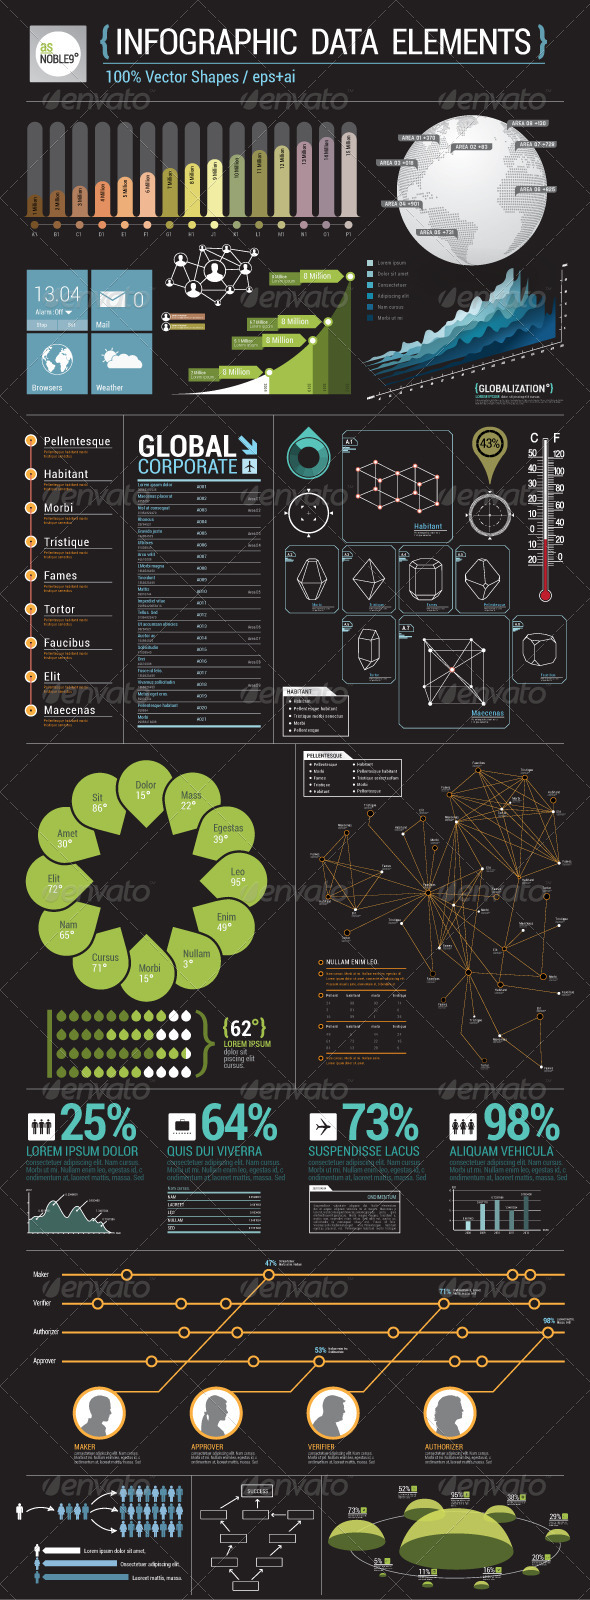 Infographic Data Elements - Infographics